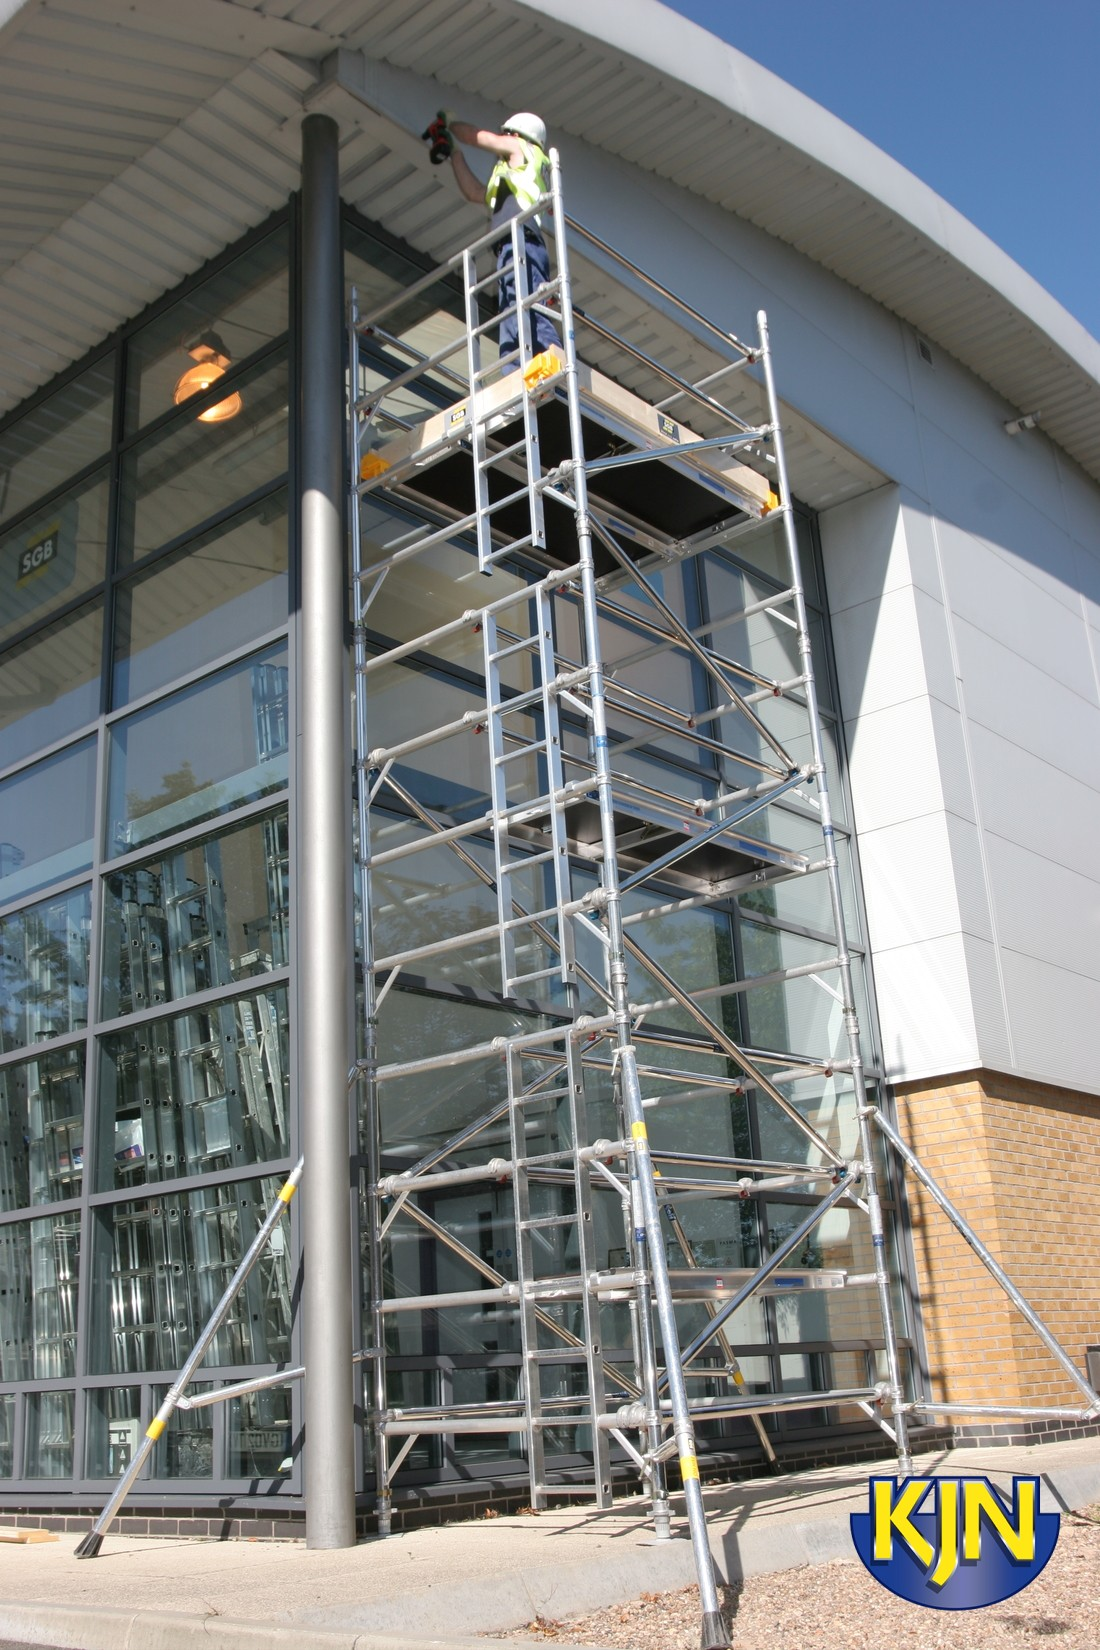 2.5m x 1m Base (Single Span) Scaffold Tower Maximum Platform Height 2.2m